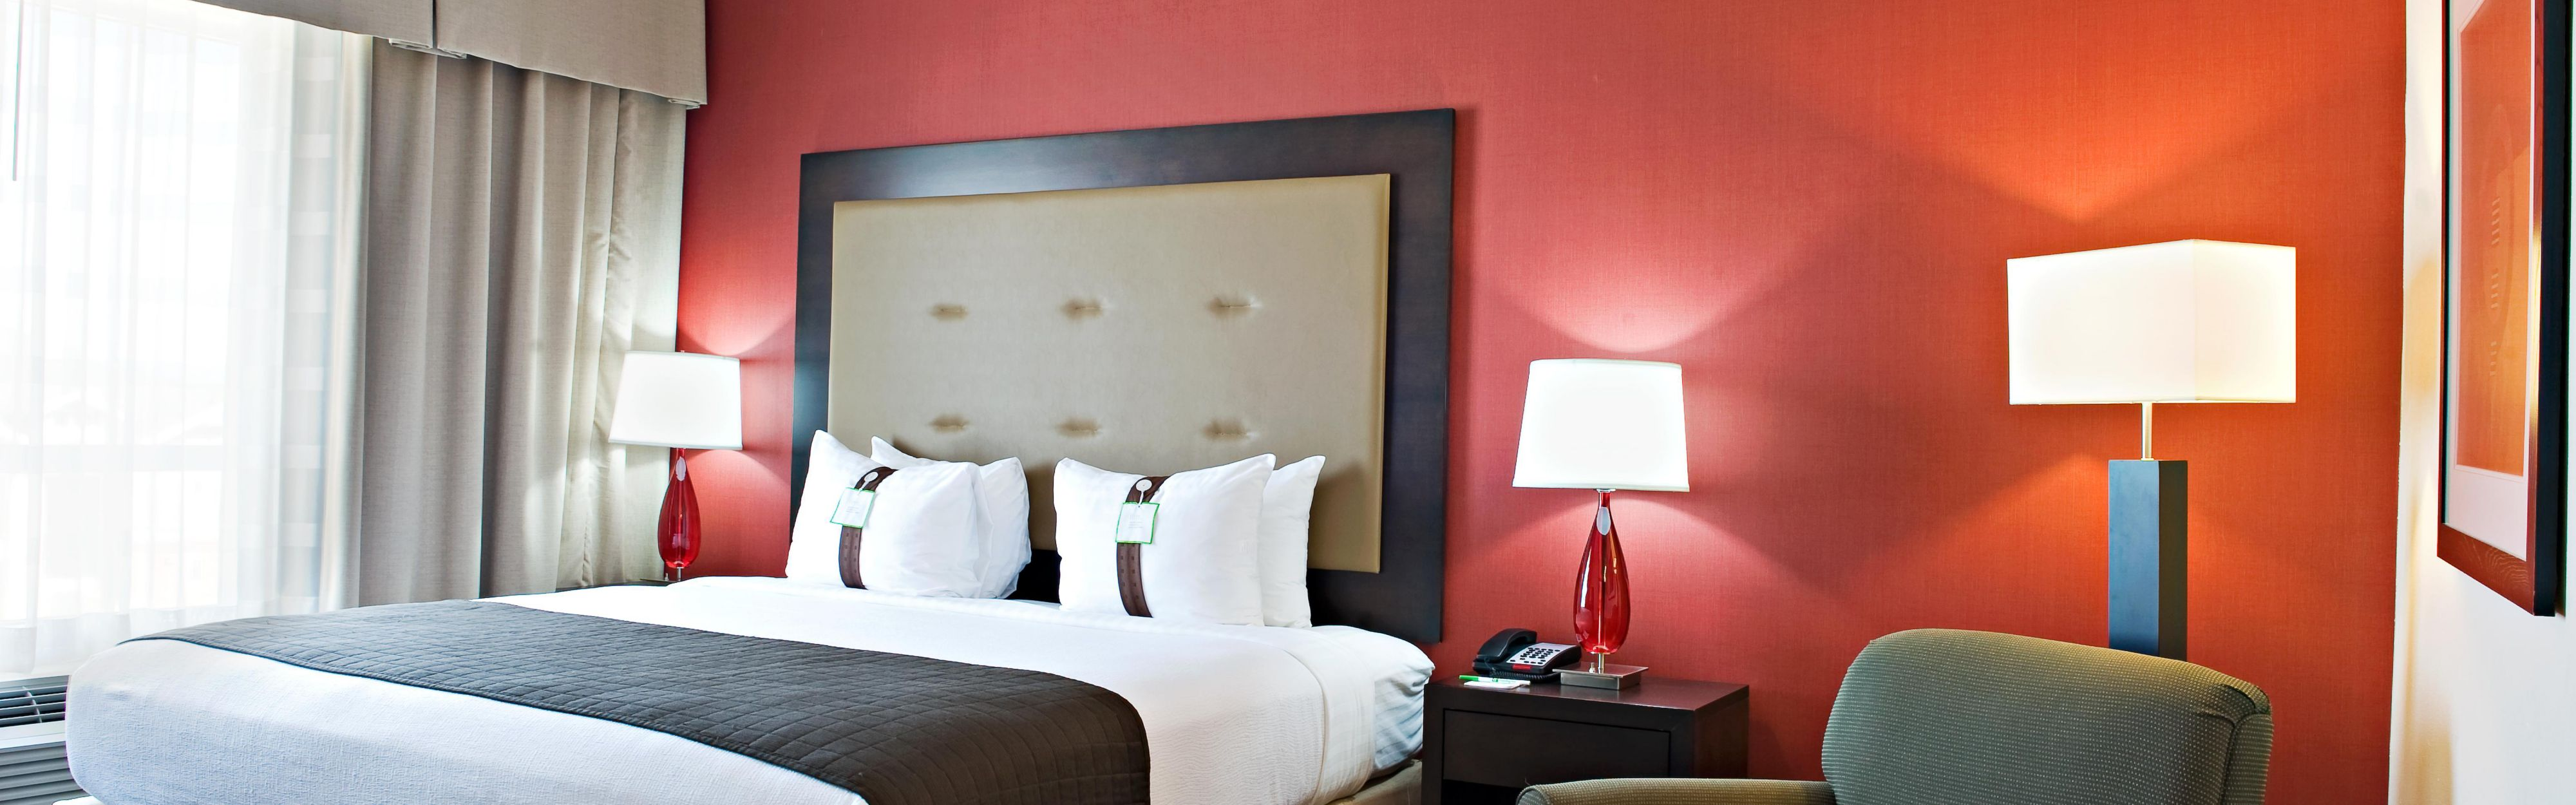 Holiday Inn Dallas-Fort Worth Airport S image 1